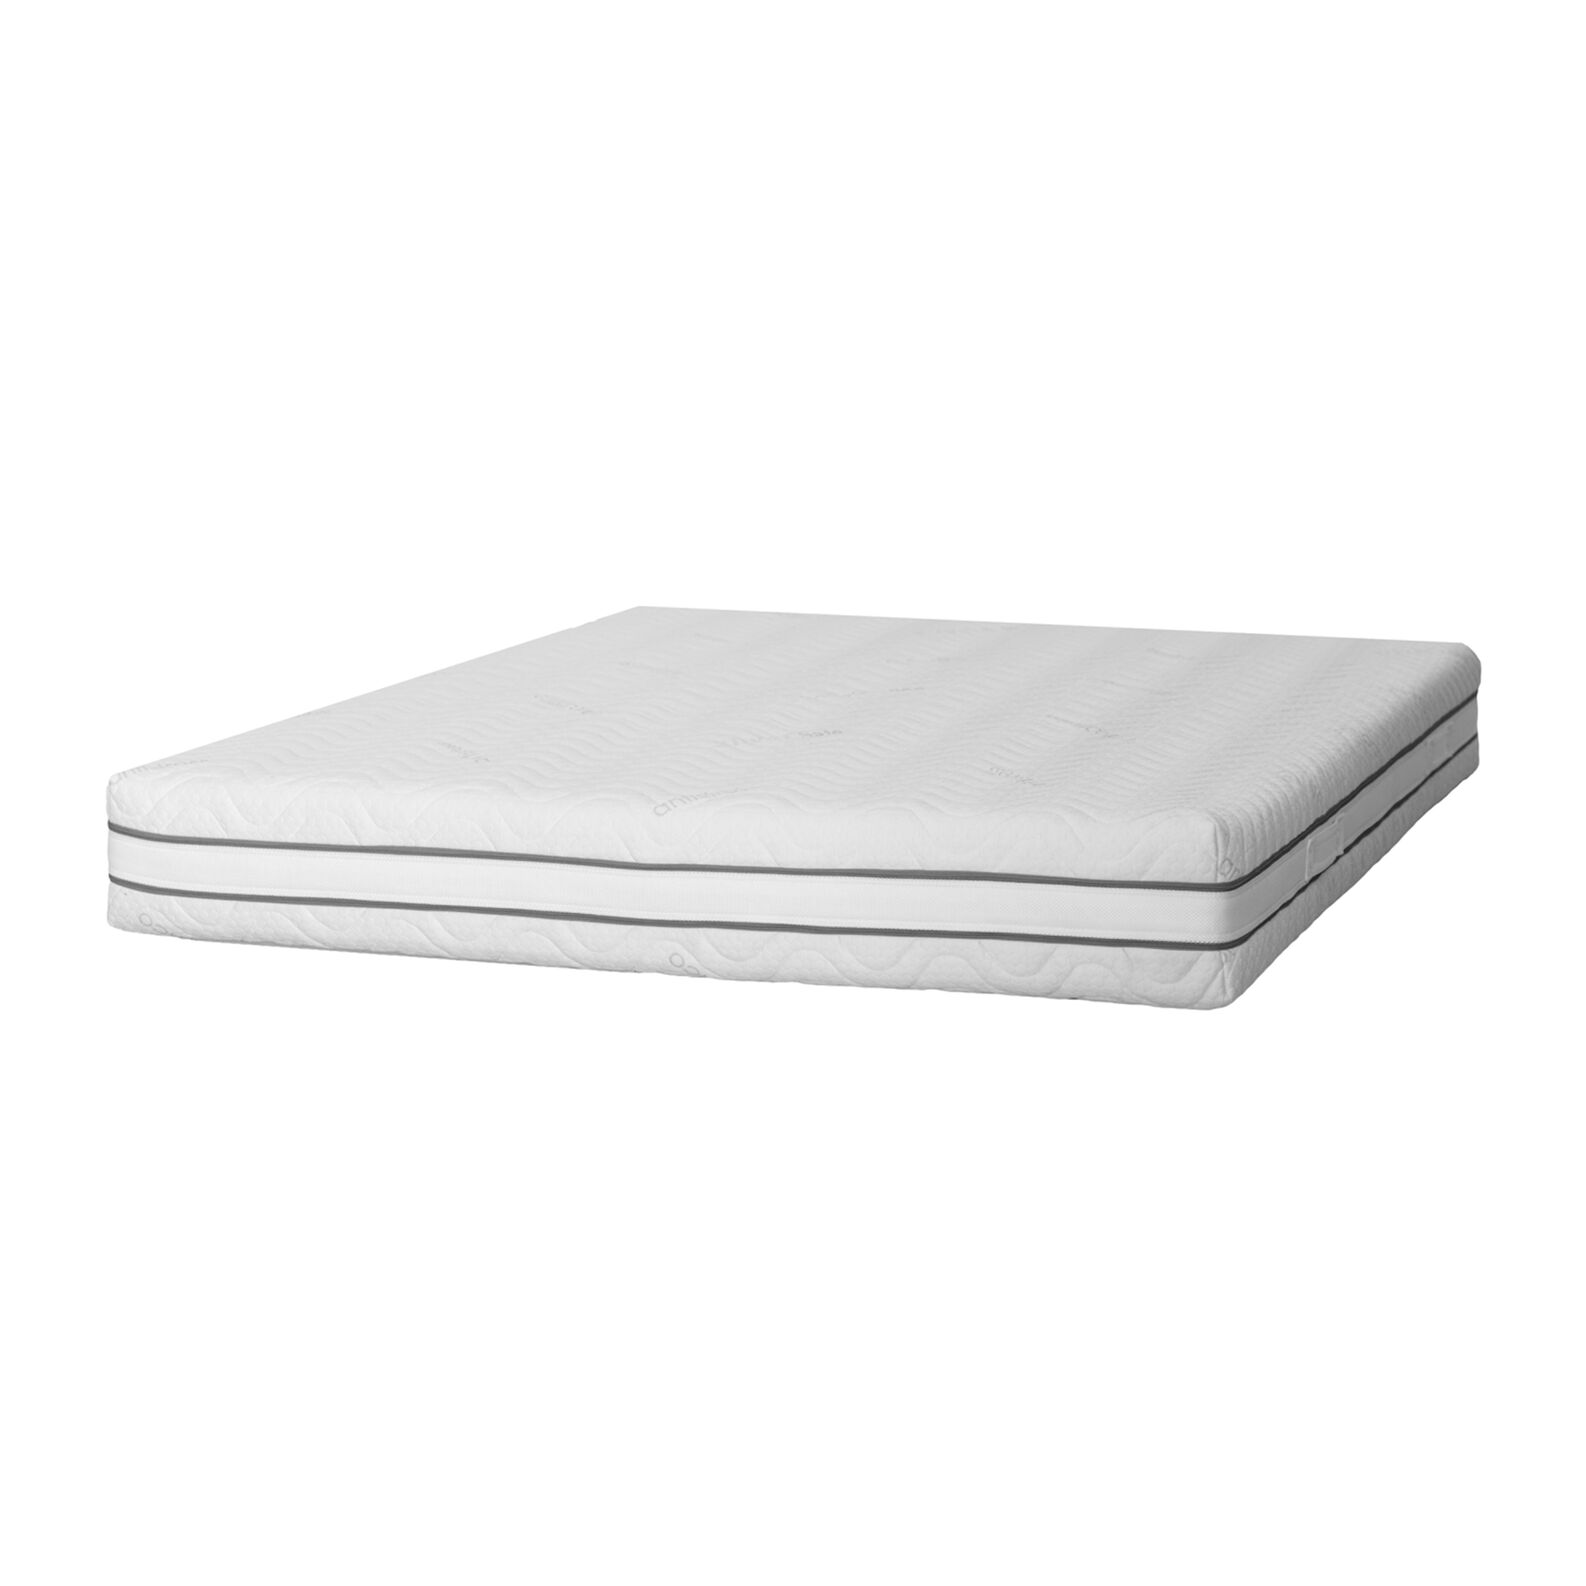 Two-season mattress with removable cover